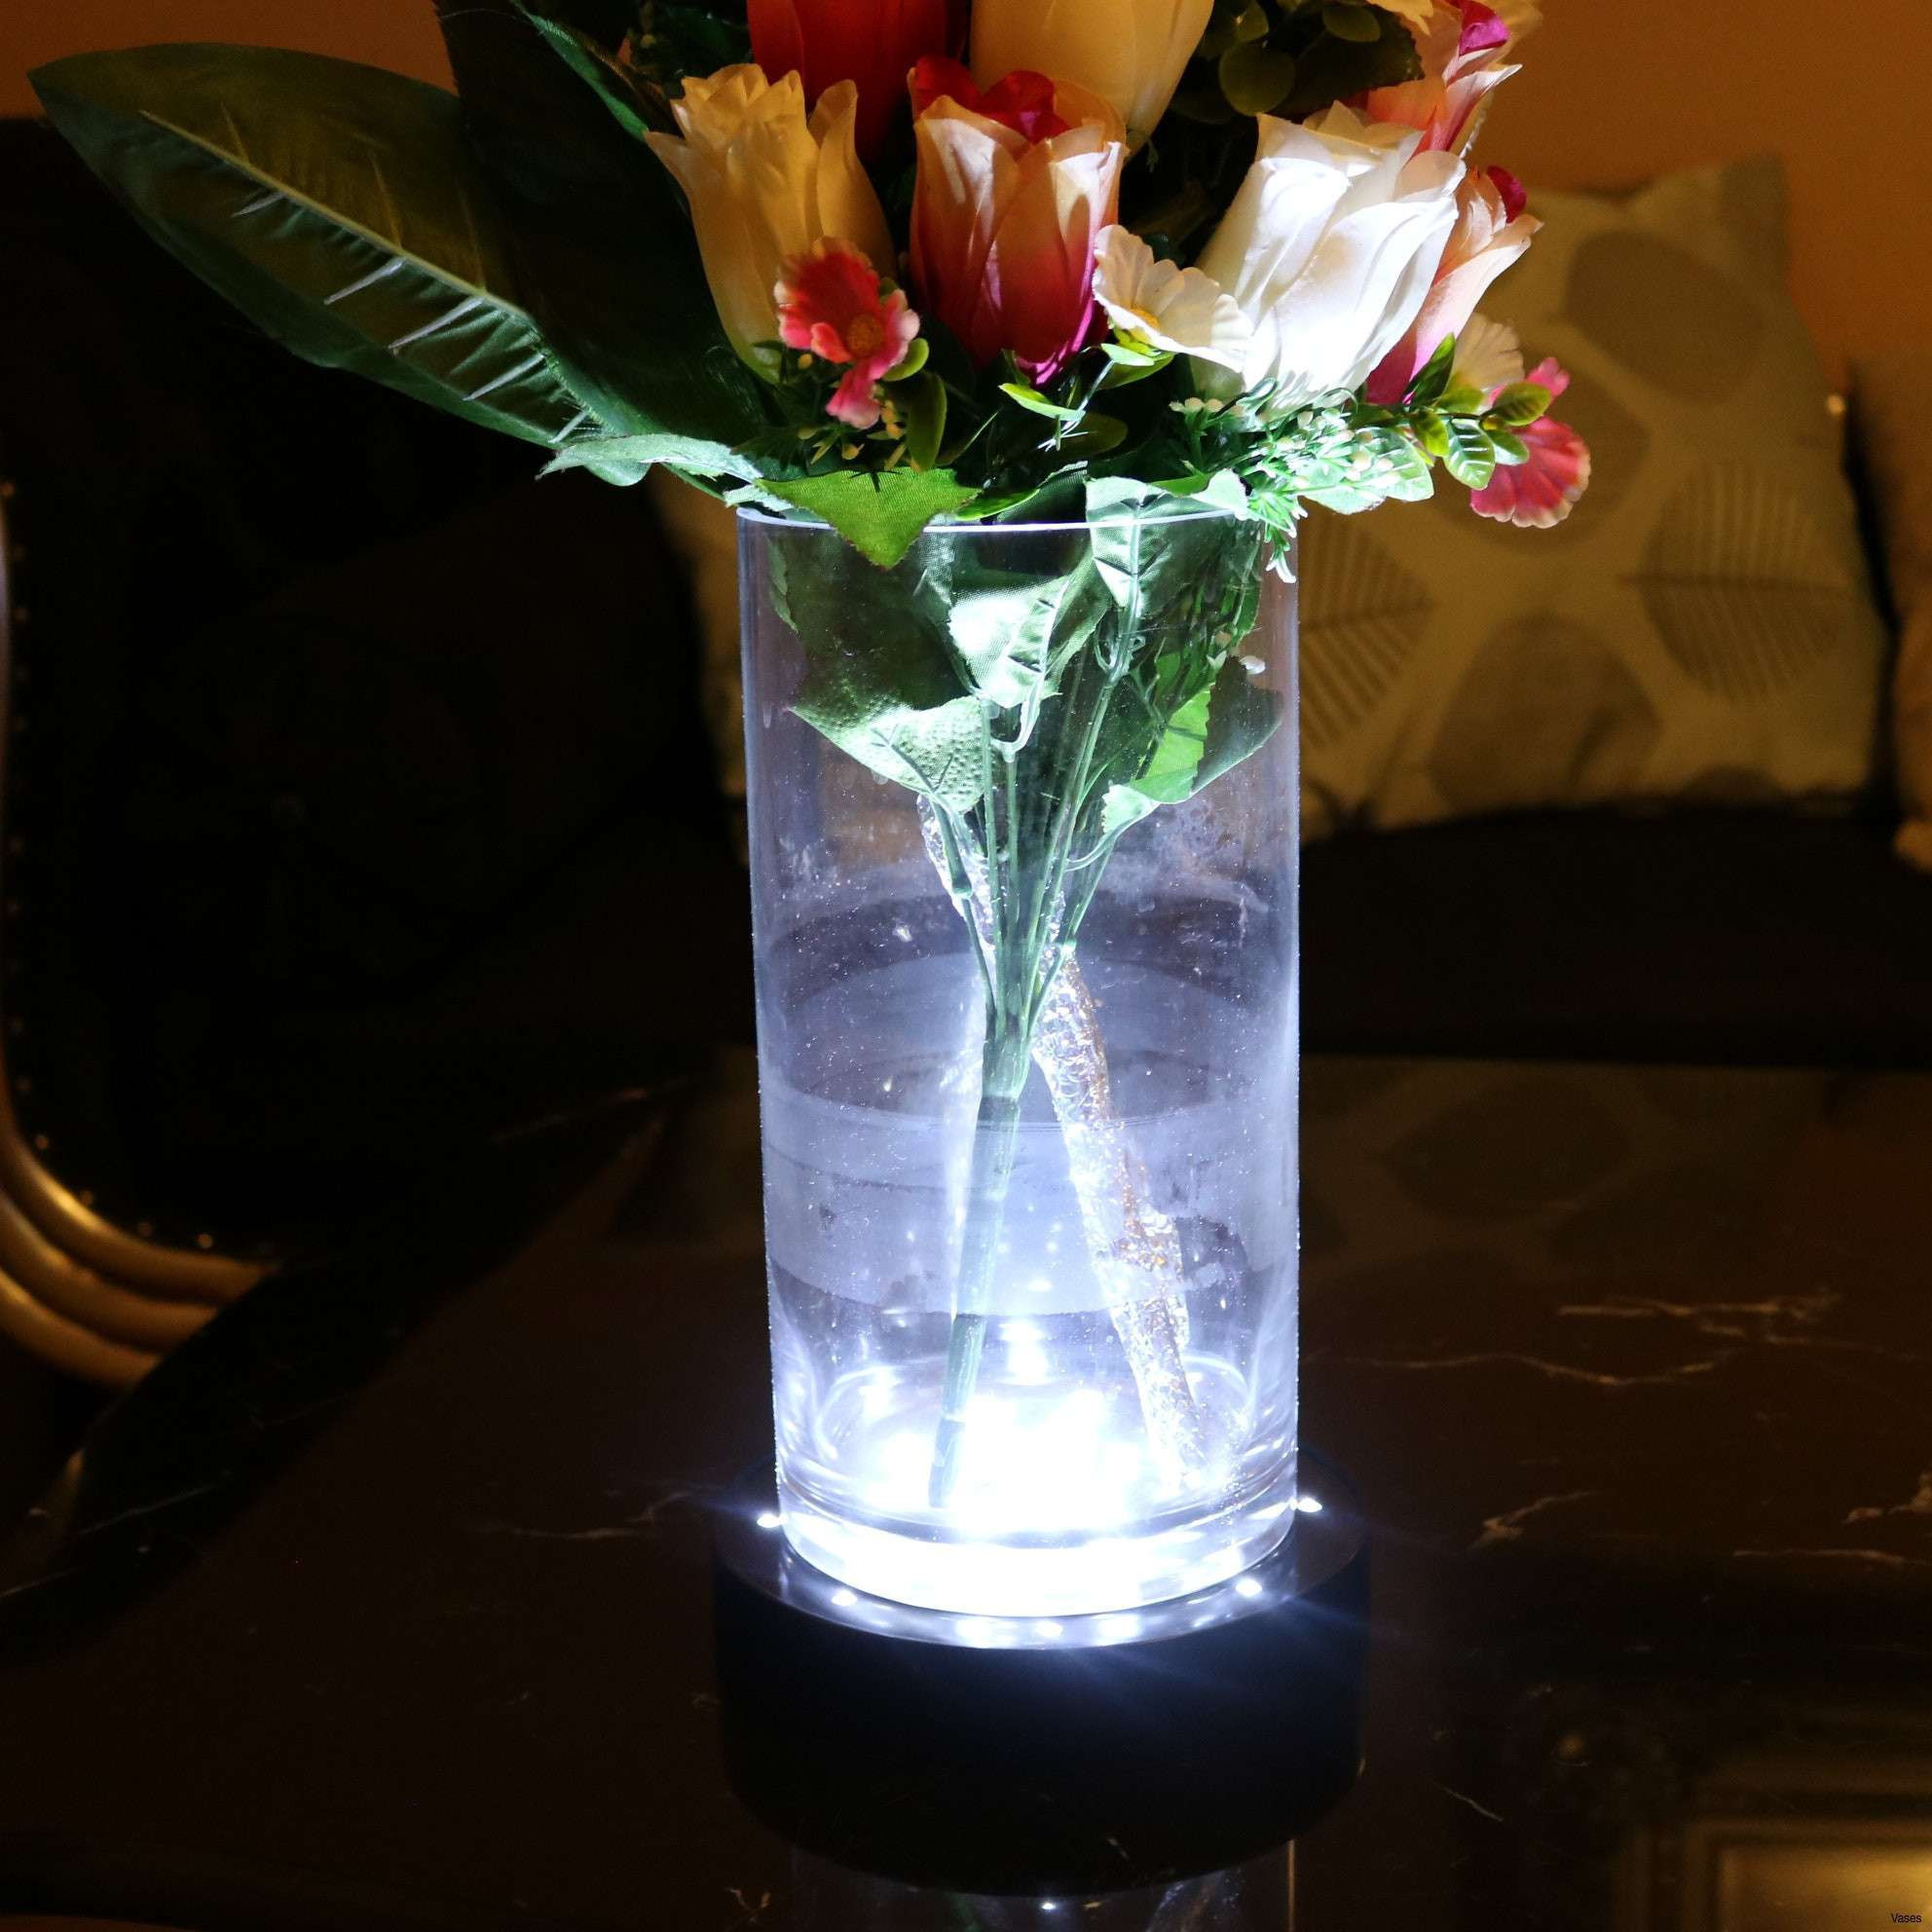 glass jars and vases of plastic cylinder vase image vases disposable plastic single cheap with regard to plastic cylinder vase image vases disposable plastic single cheap flower rose vasei 0d design